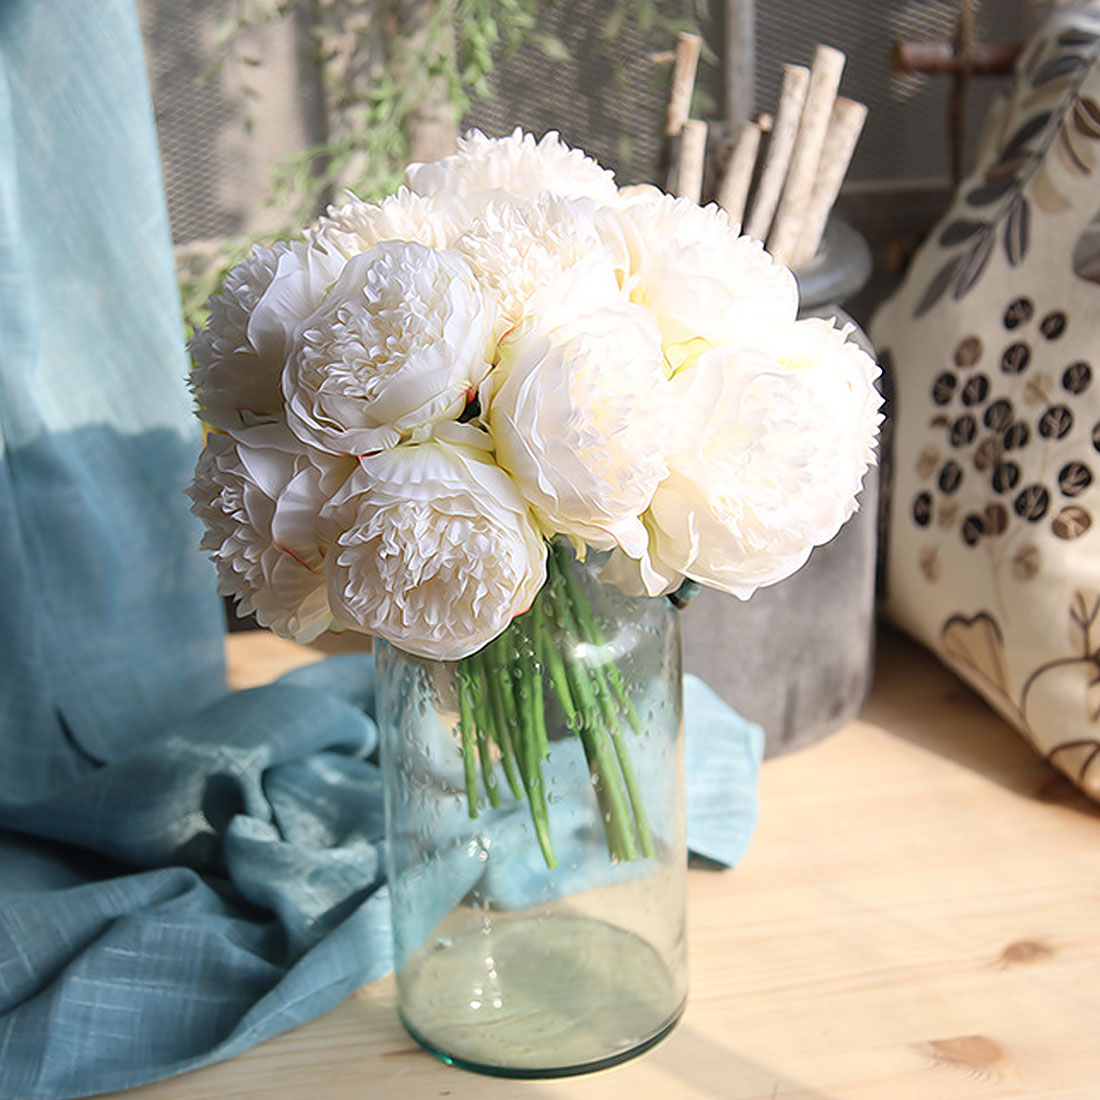 Artificial flowers peony dahlias 5 heads silk flower wedding bouquet application holidaywedding partymonthers daychristmas dayvalentines day thanksgiving daynew year birthday gift and so on izmirmasajfo